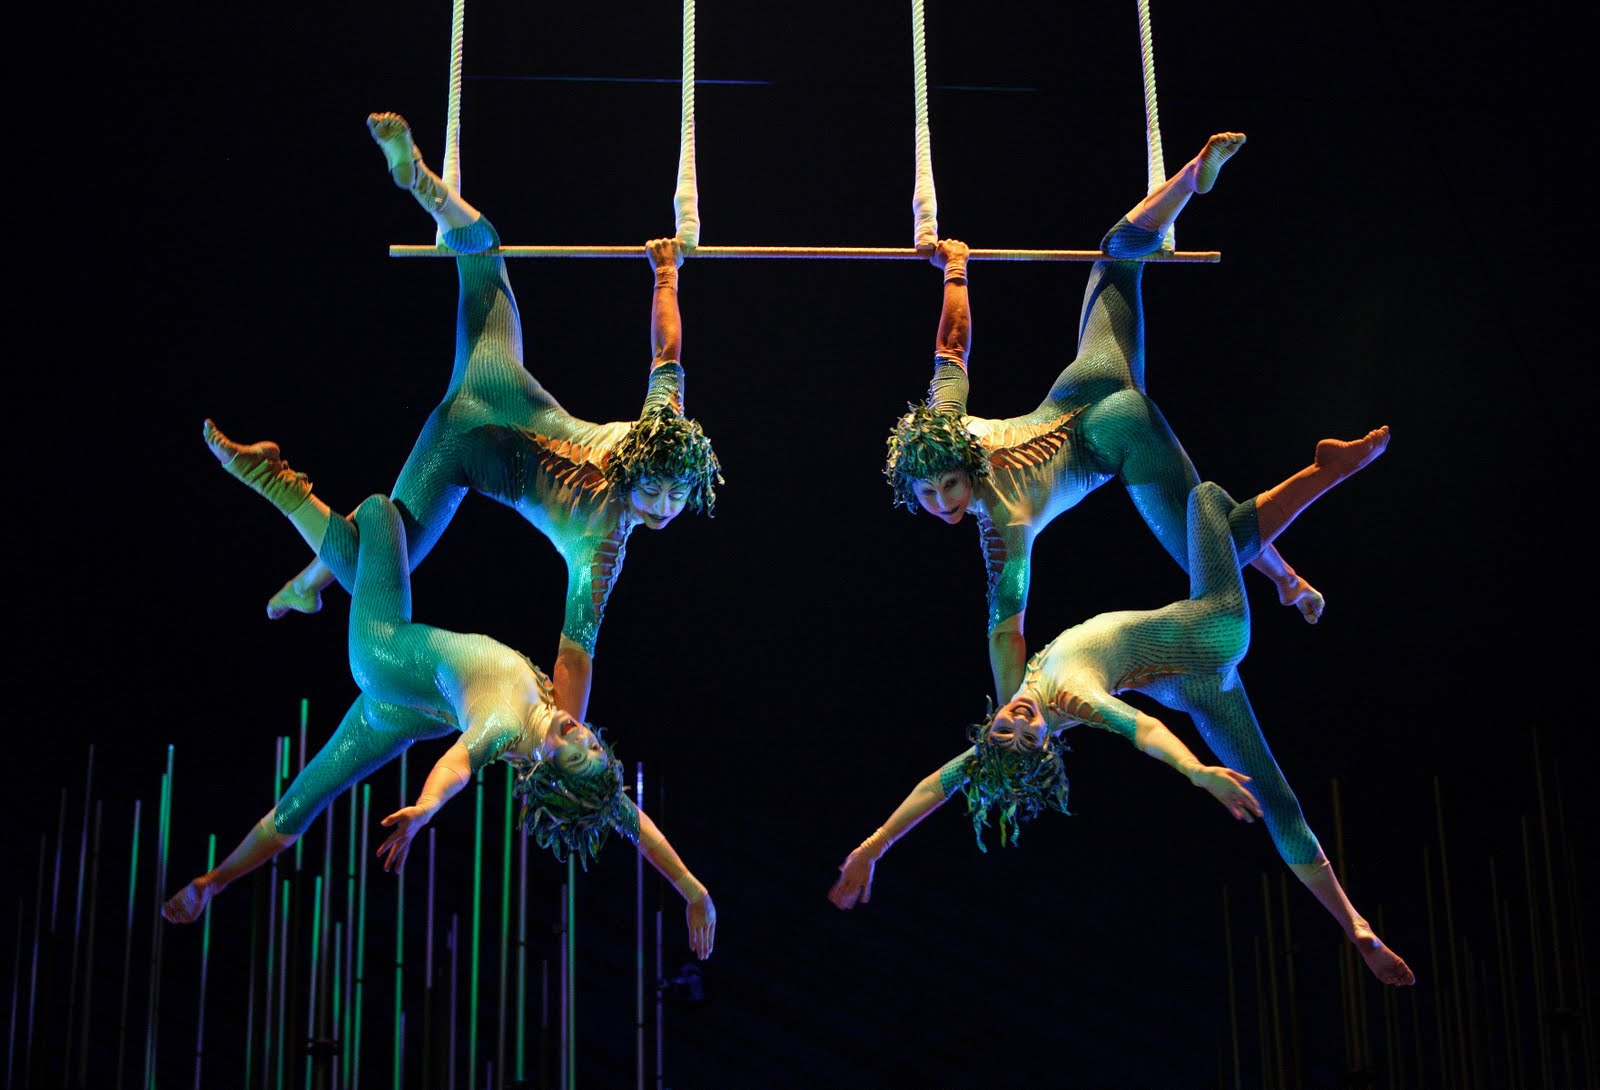 cirque du soliel Buy cirque du soleil - o tickets to the 2018 cirque du soleil - o schedule and las vegas dates purchase cheap cirque du soleil - o tickets and discounted cirque du soleil - o tickets to see cirque du soleil - o live at ticketsupply.